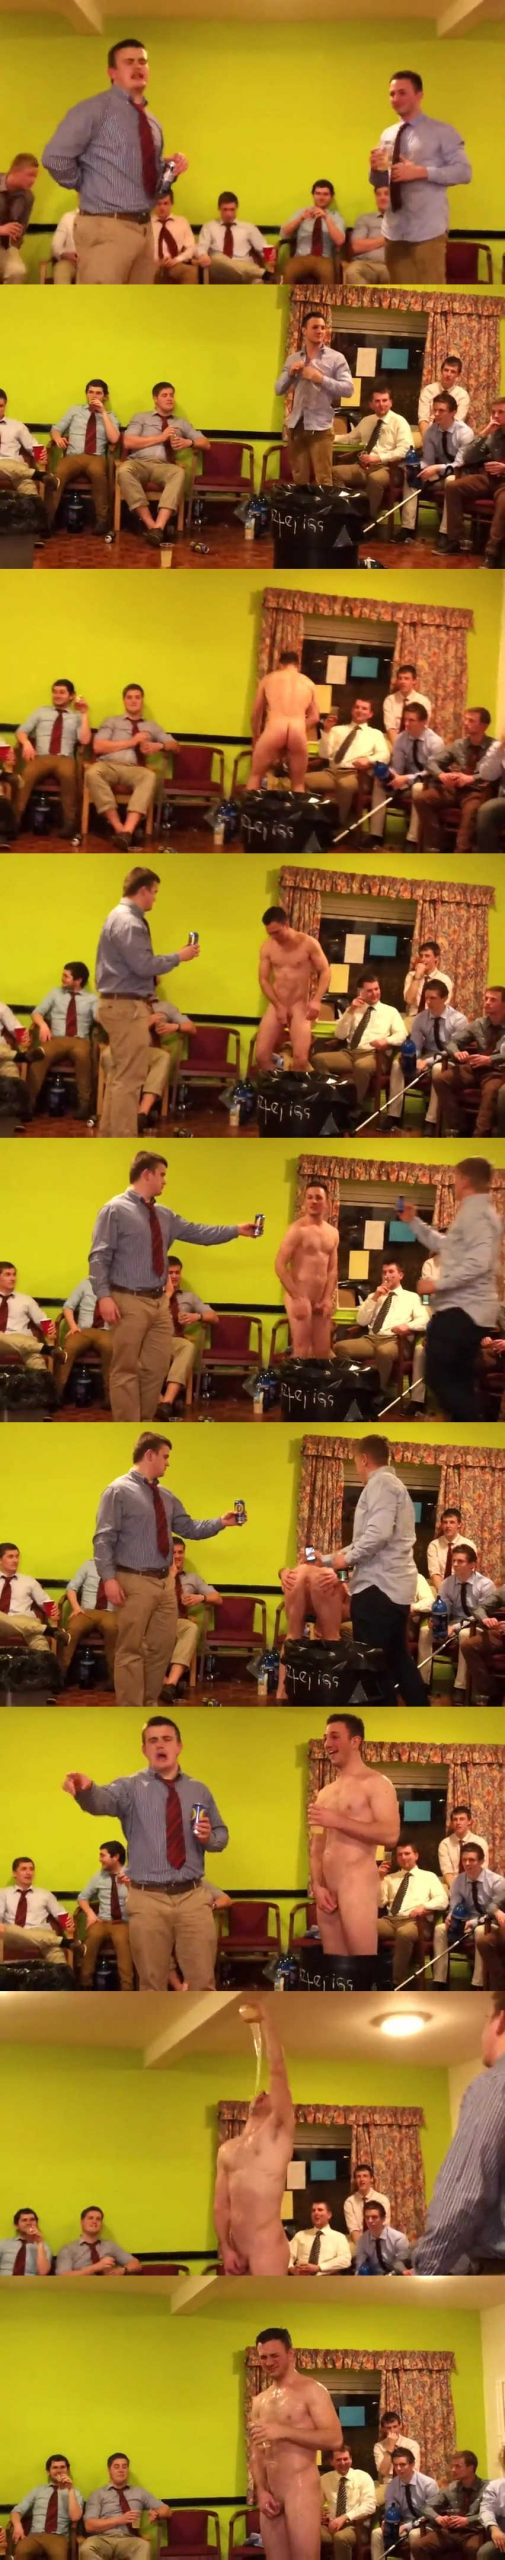 rugby guy newbie stripped in front of his mates